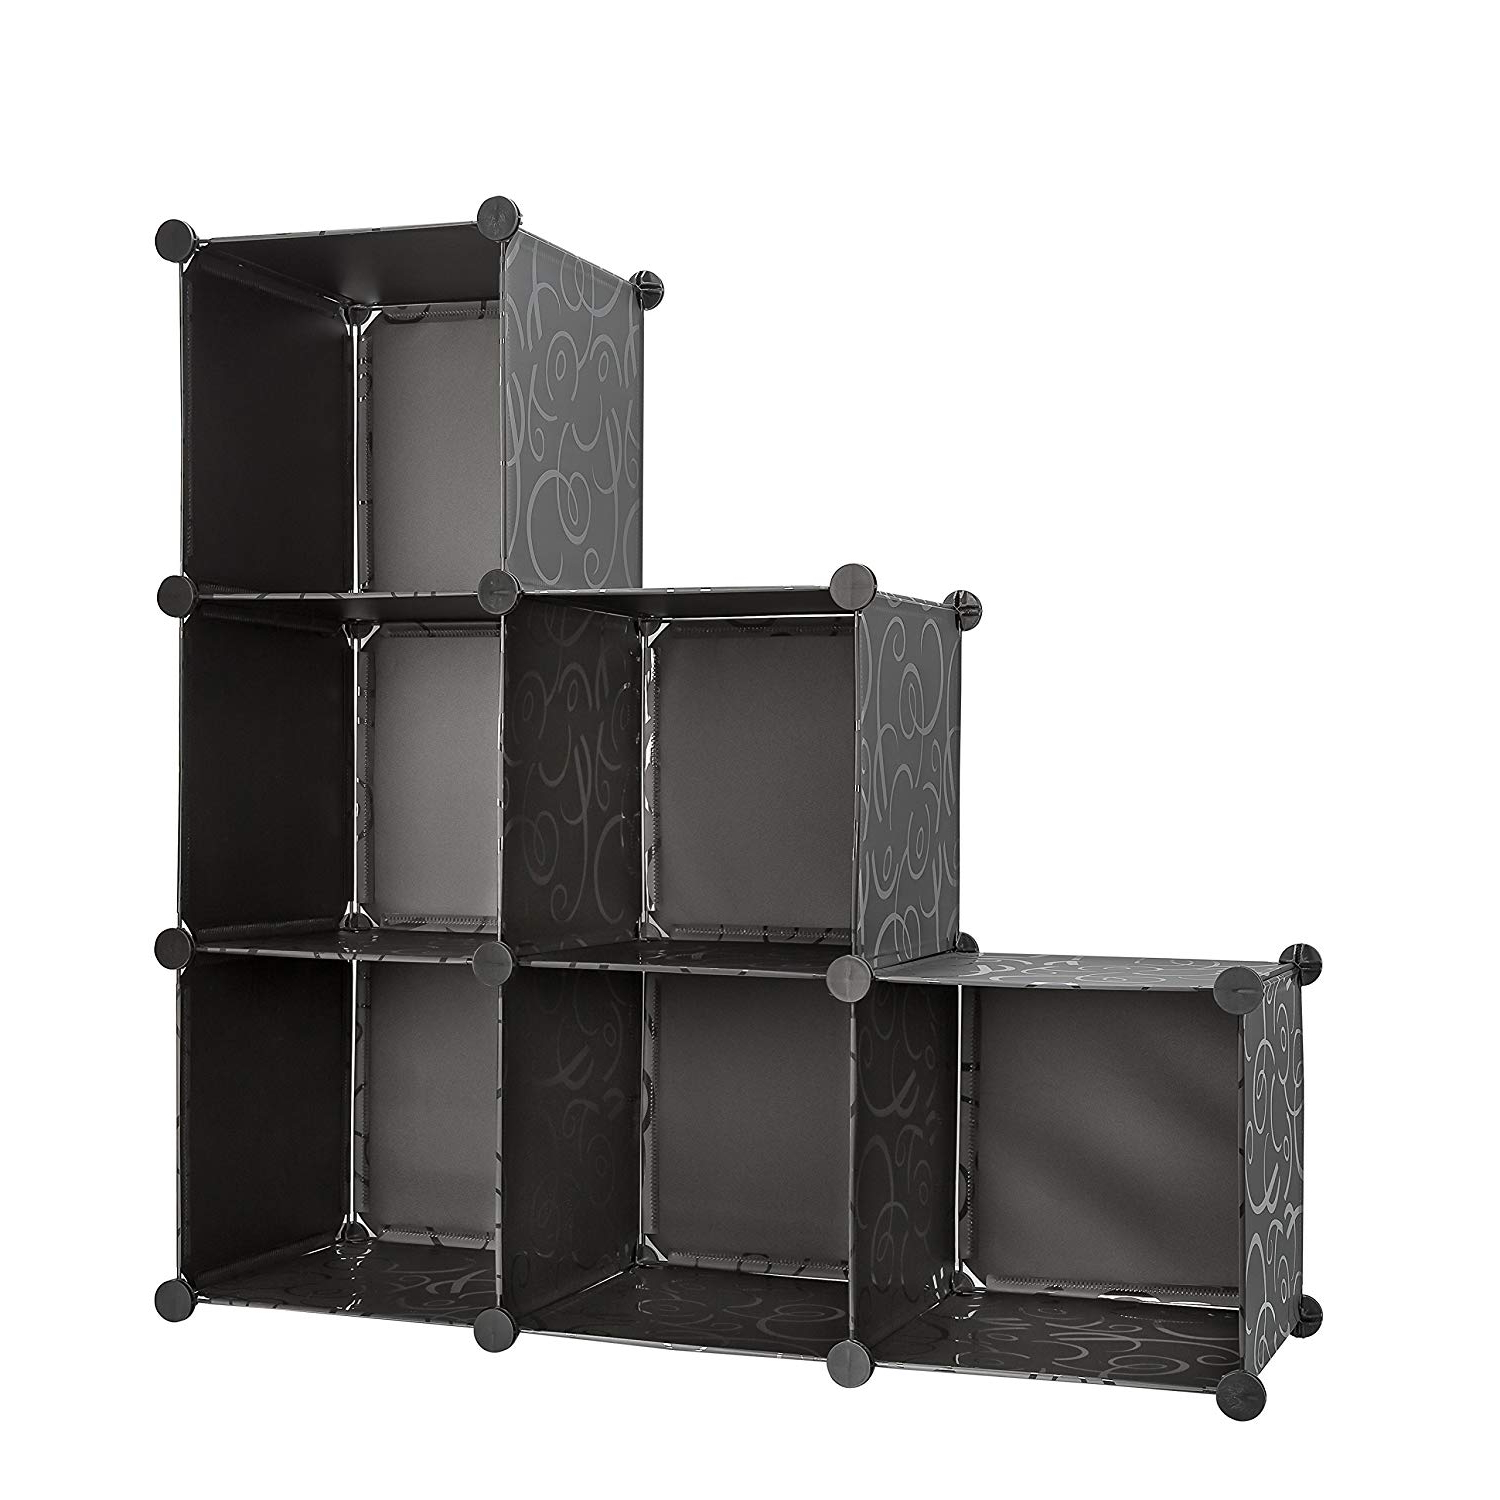 Storage Cube Organizer Bins With 3 Tiers Of Bookcase Modular Cubicals. 6  Cubes Make Great Organizer For Closet, Books, Arts & Crafts While  Minimizing In Current Cubicals Cube Bookcases (Gallery 8 of 20)